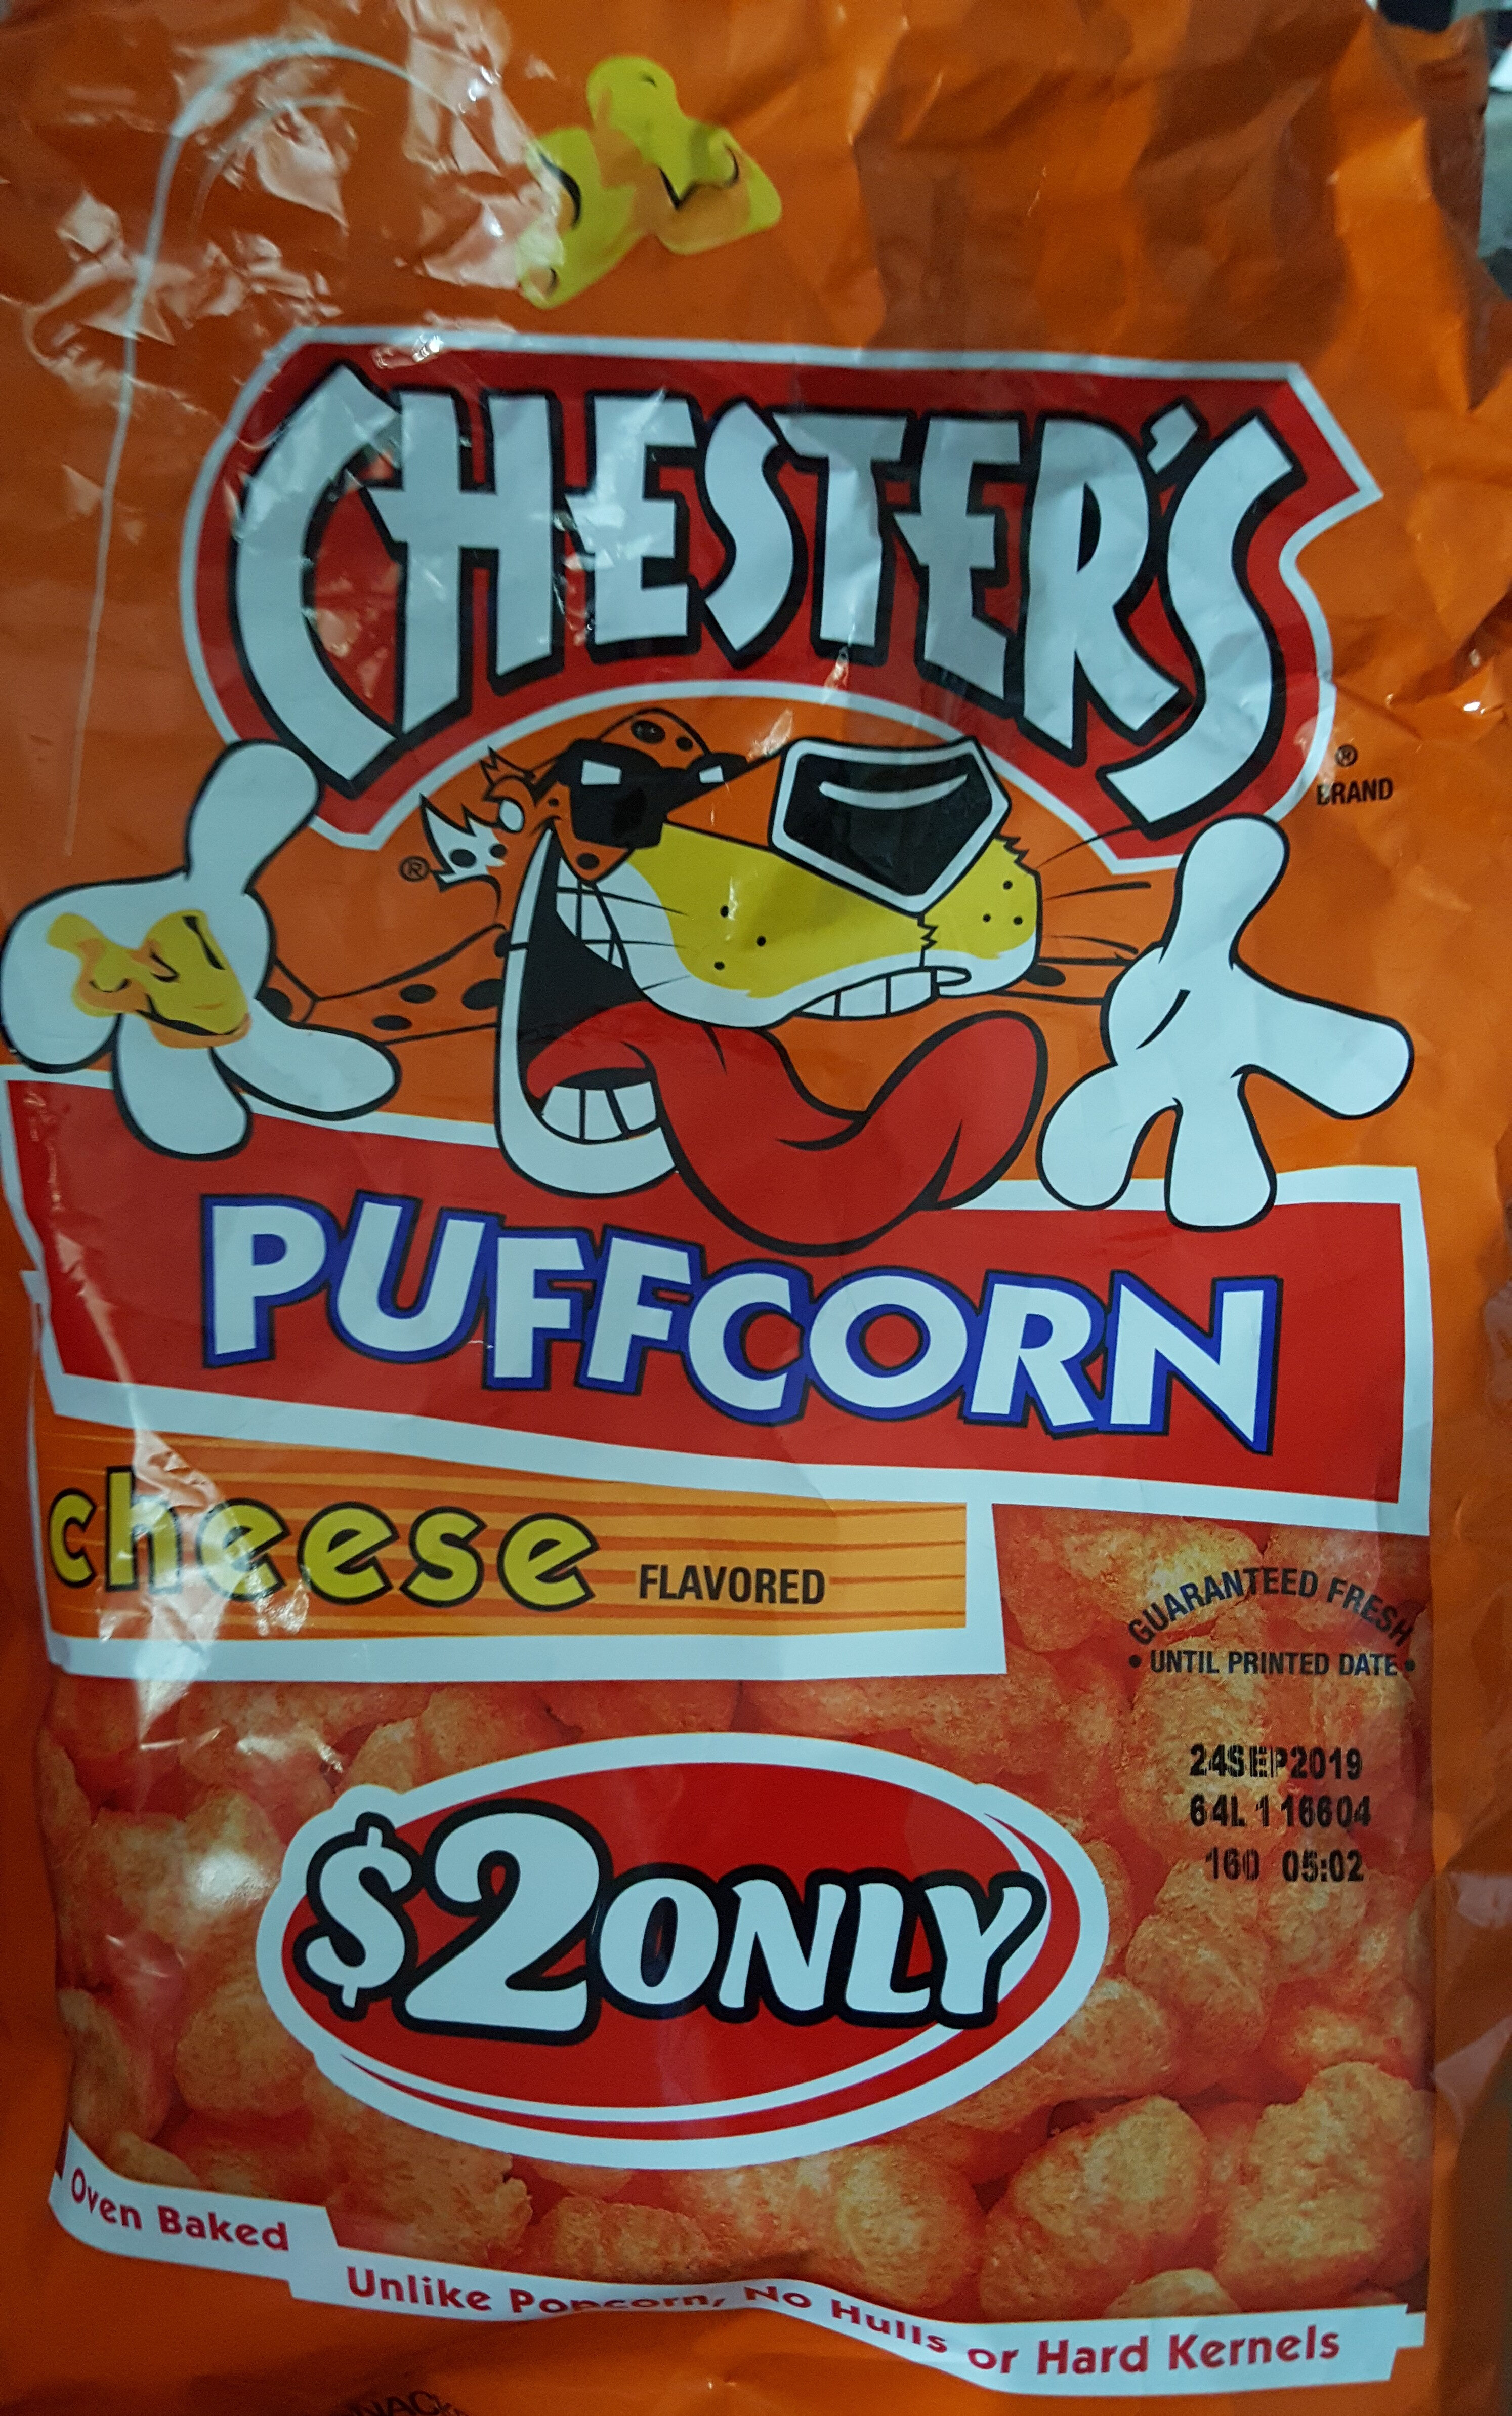 Chesters Puffcorn Cheese - Product - en